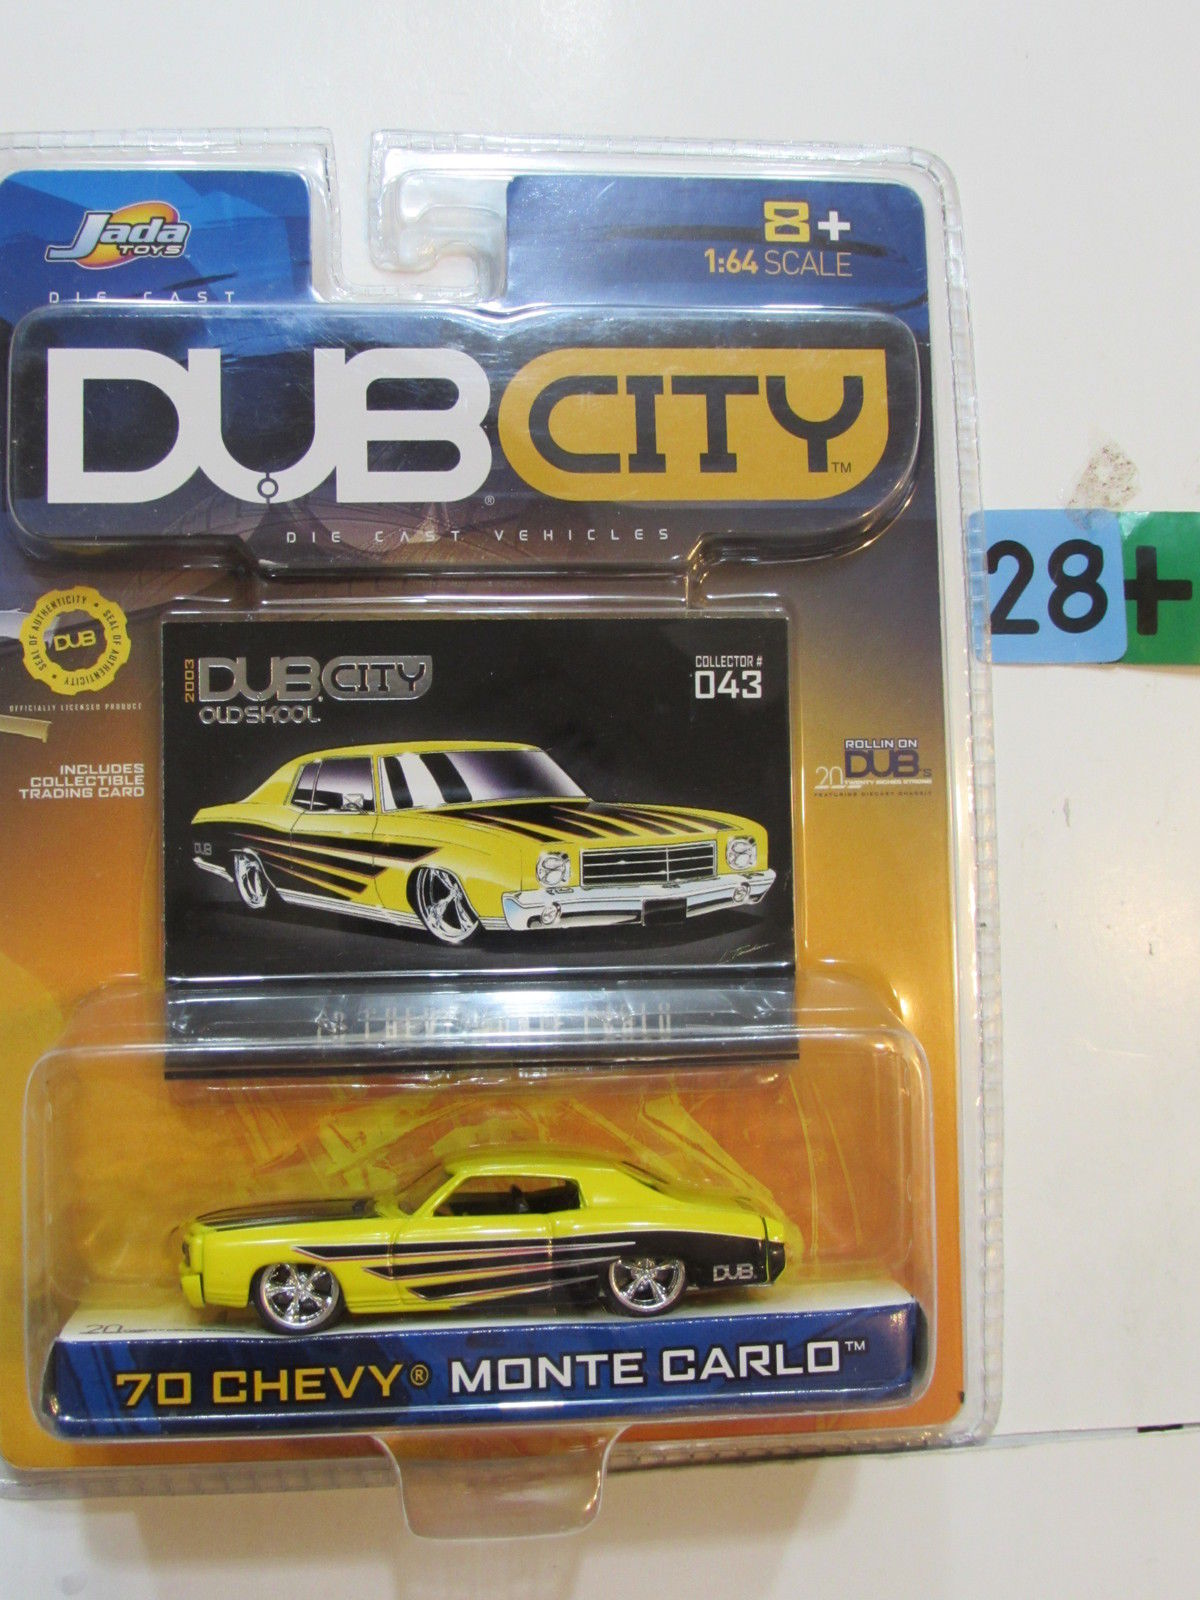 JADA TOYS DUB CITY - '70 CHEVY MONTE CARLO CLTR 043 SCALE 1:64